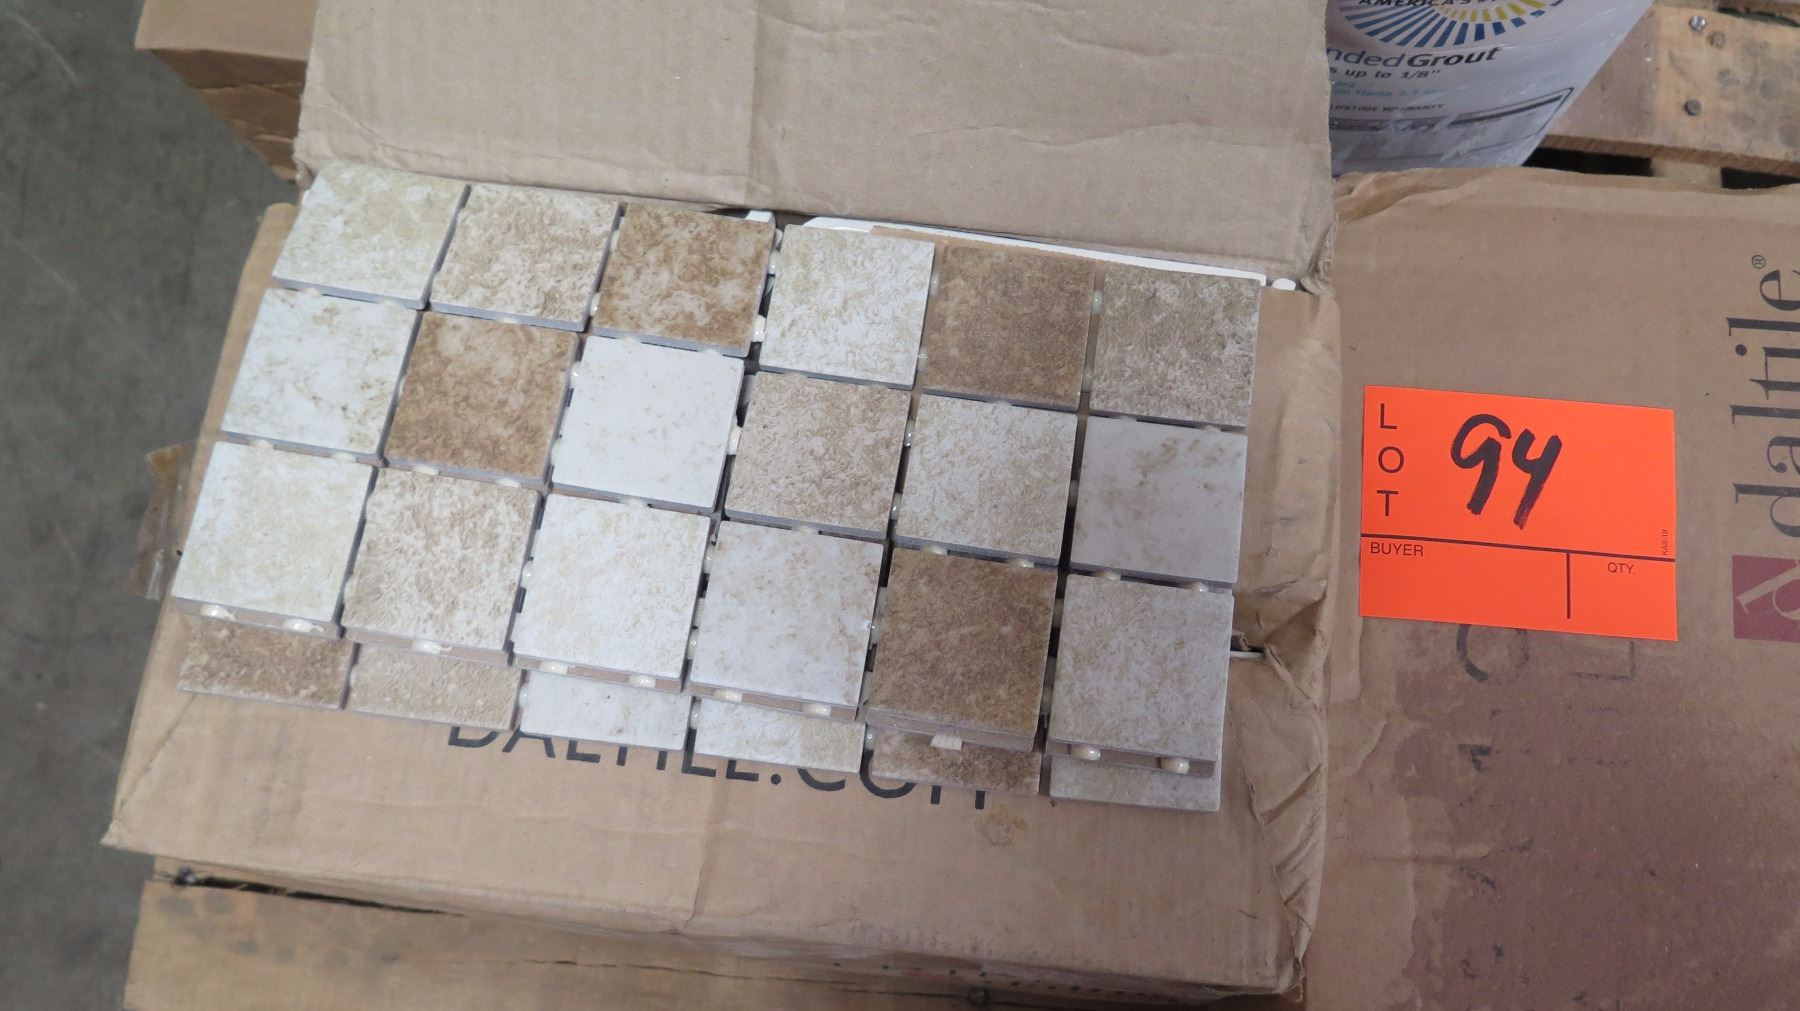 Contents of pallet ceramic tiles misc colors sizes types image 2 contents of pallet ceramic tiles misc dailygadgetfo Gallery